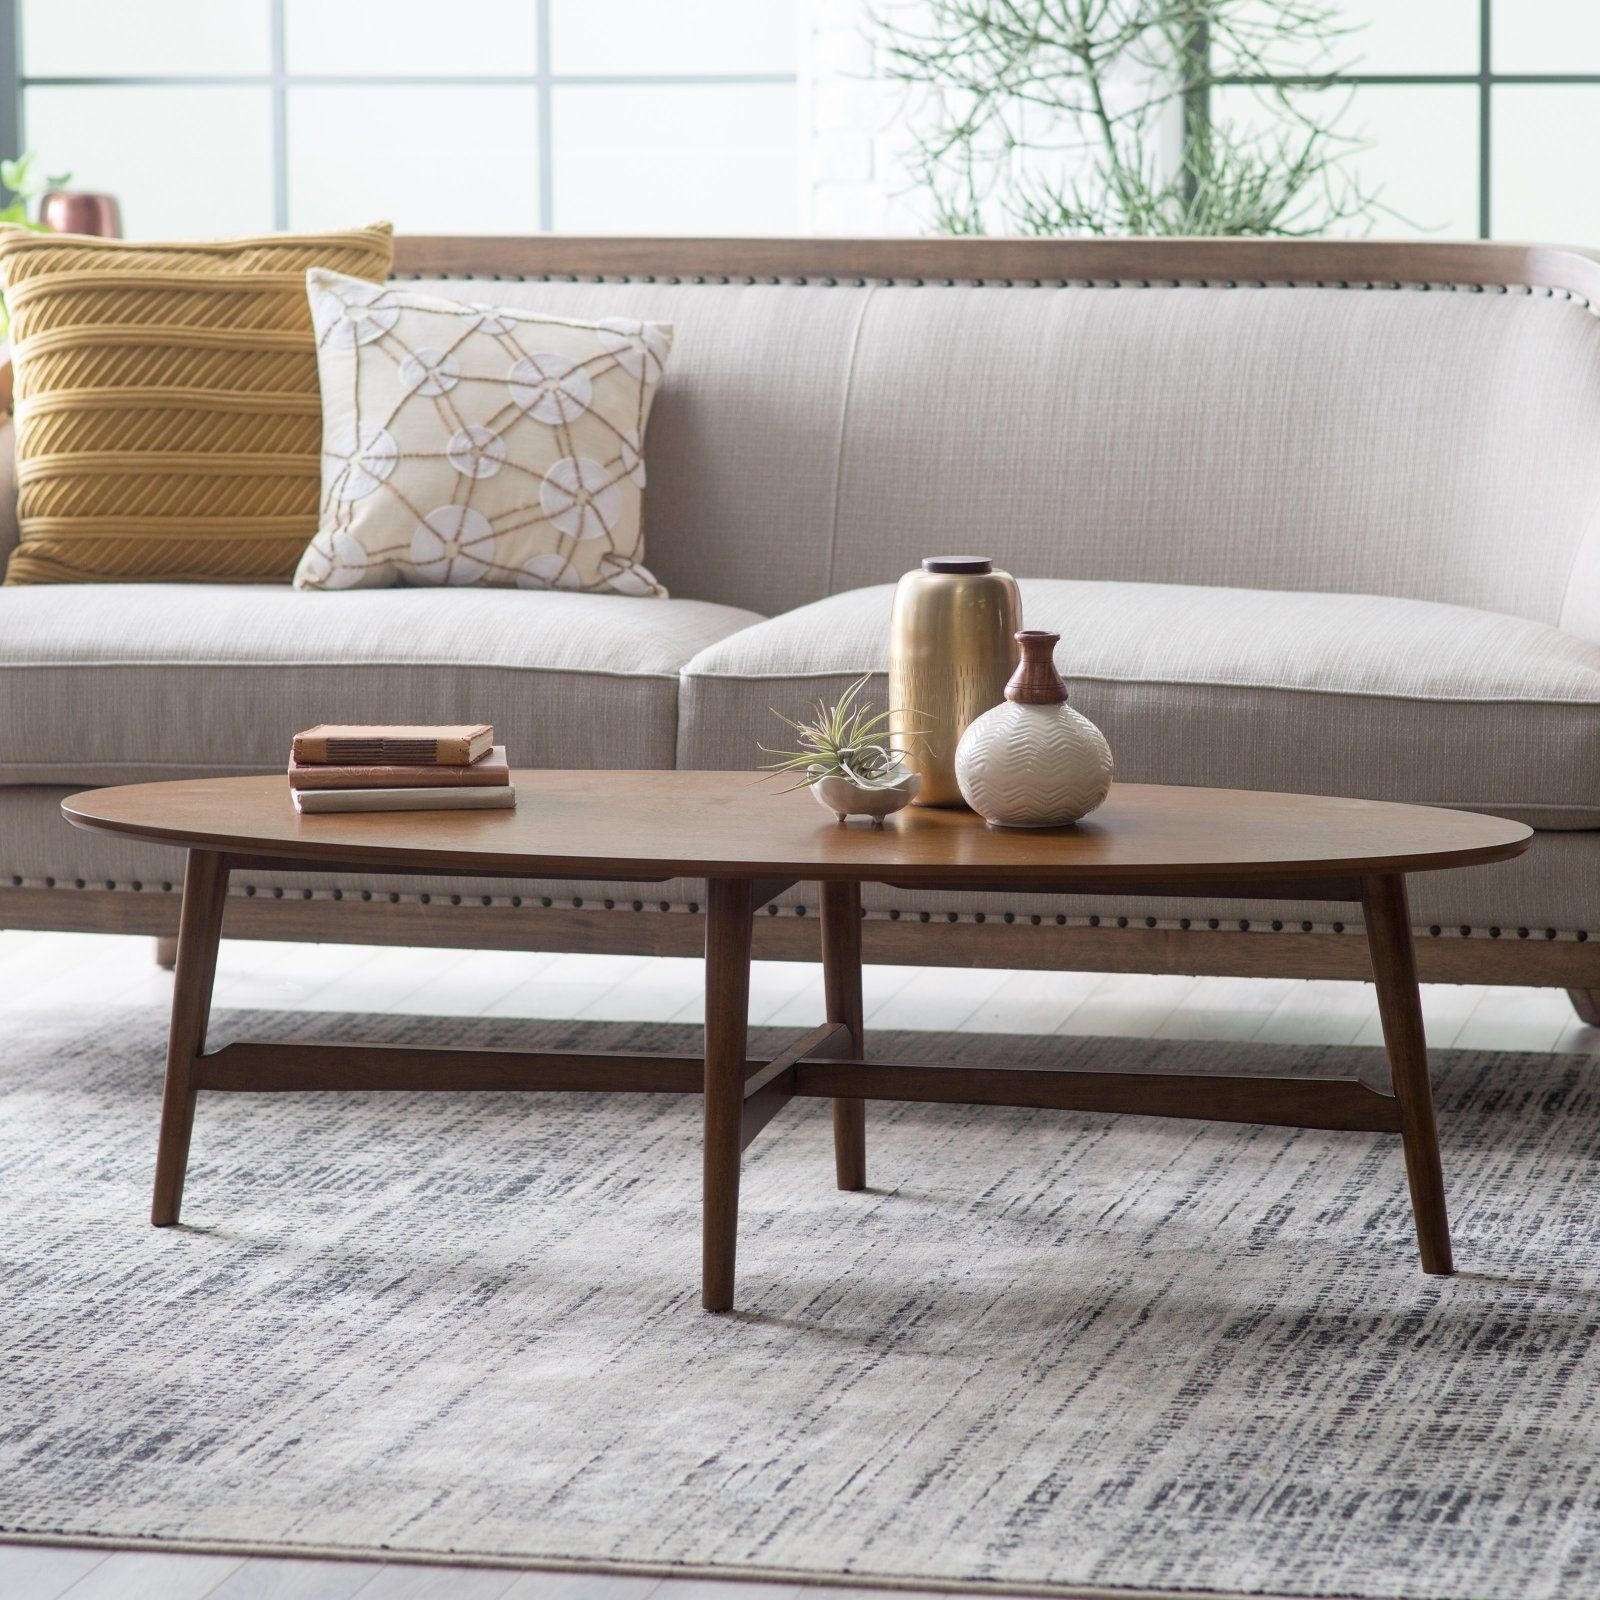 Marvelous Mid Century Modern Coffee Table Ideas To Try This Month 14